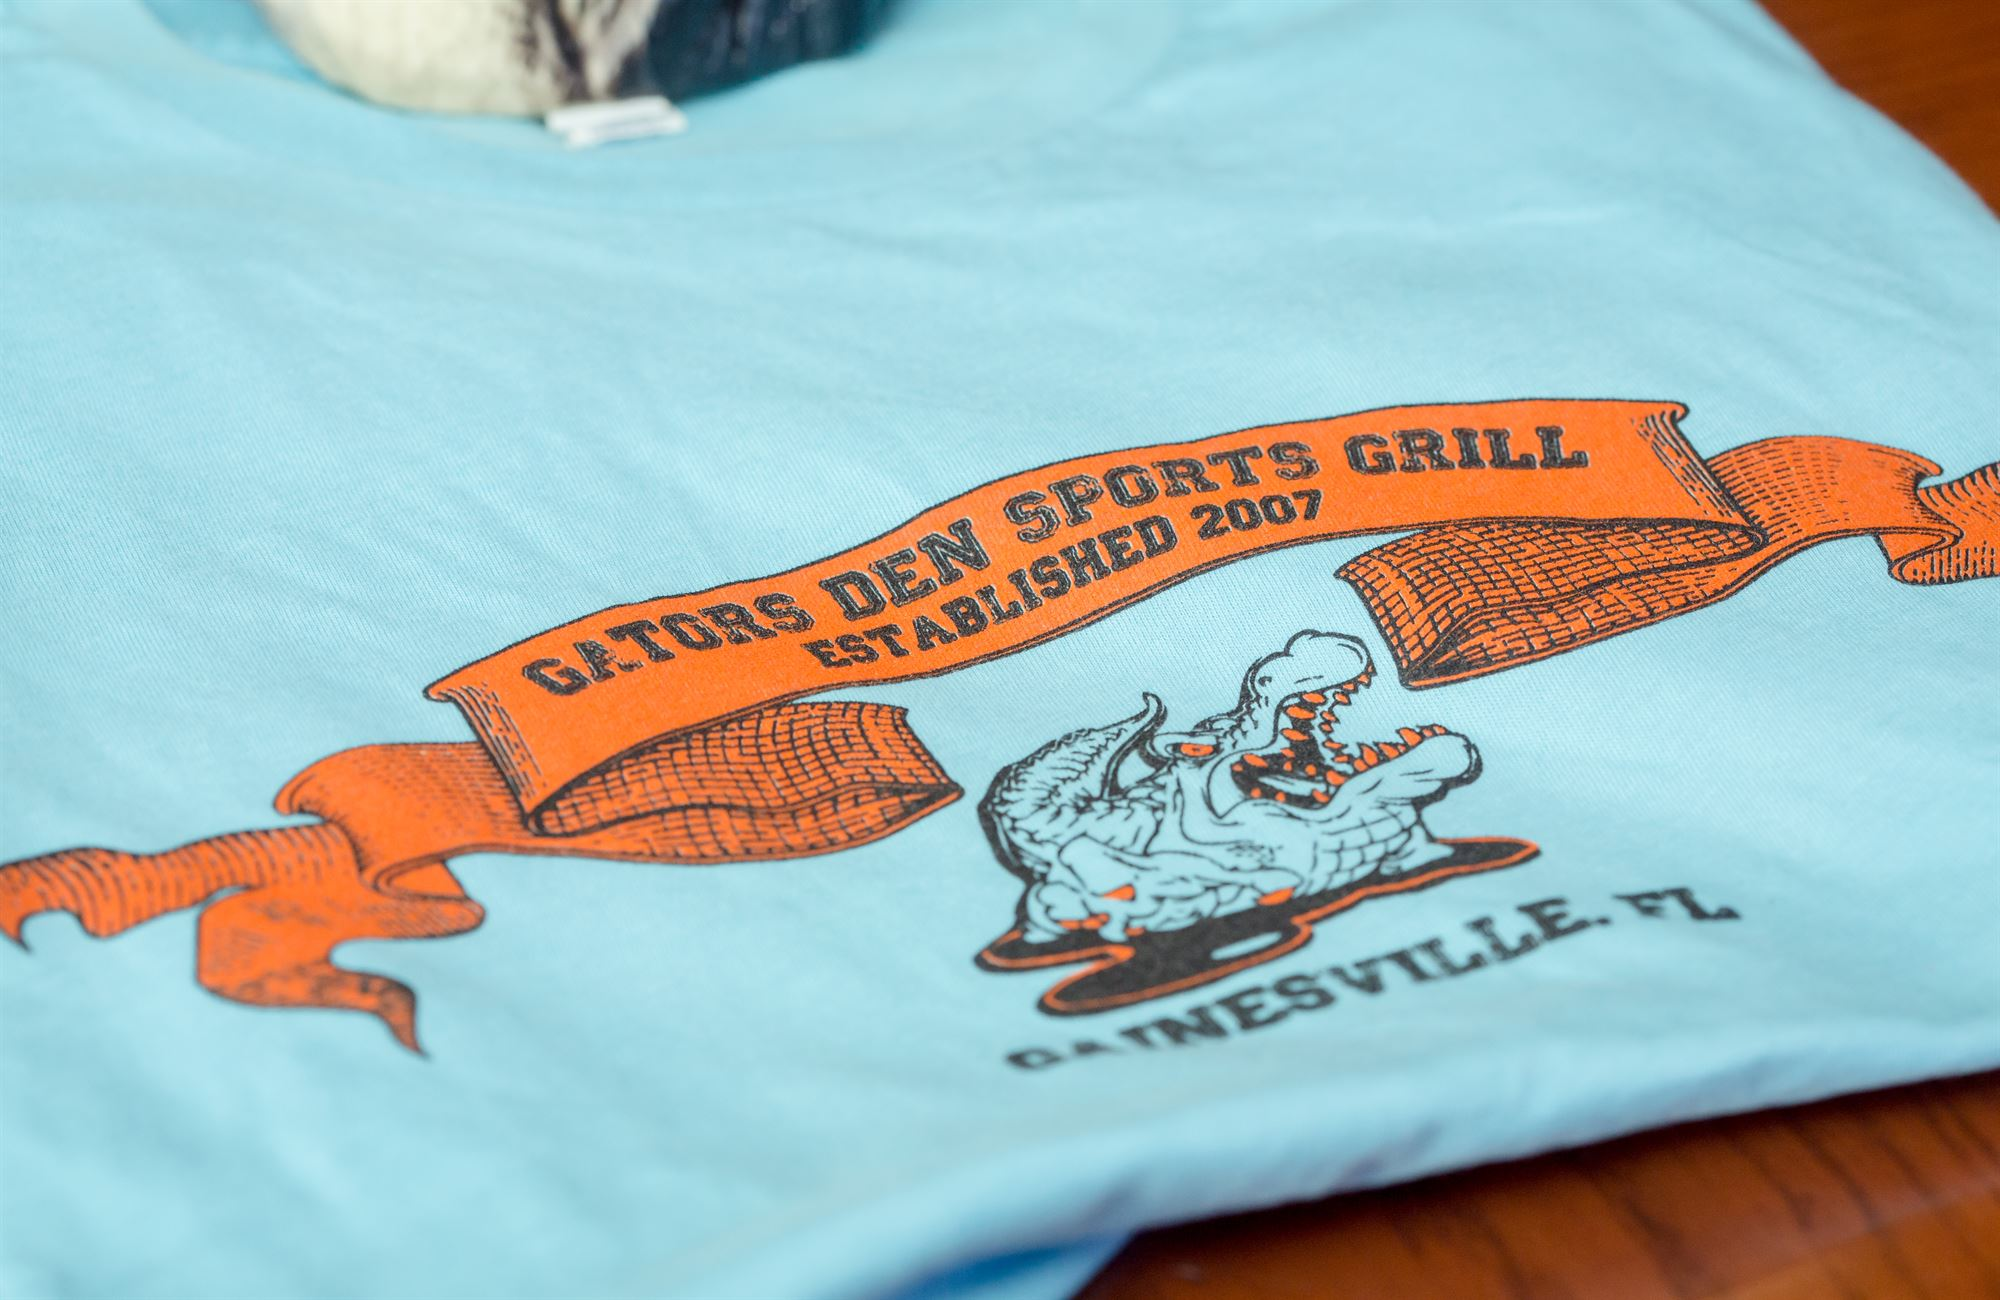 Gators Den Sports Grill shirt